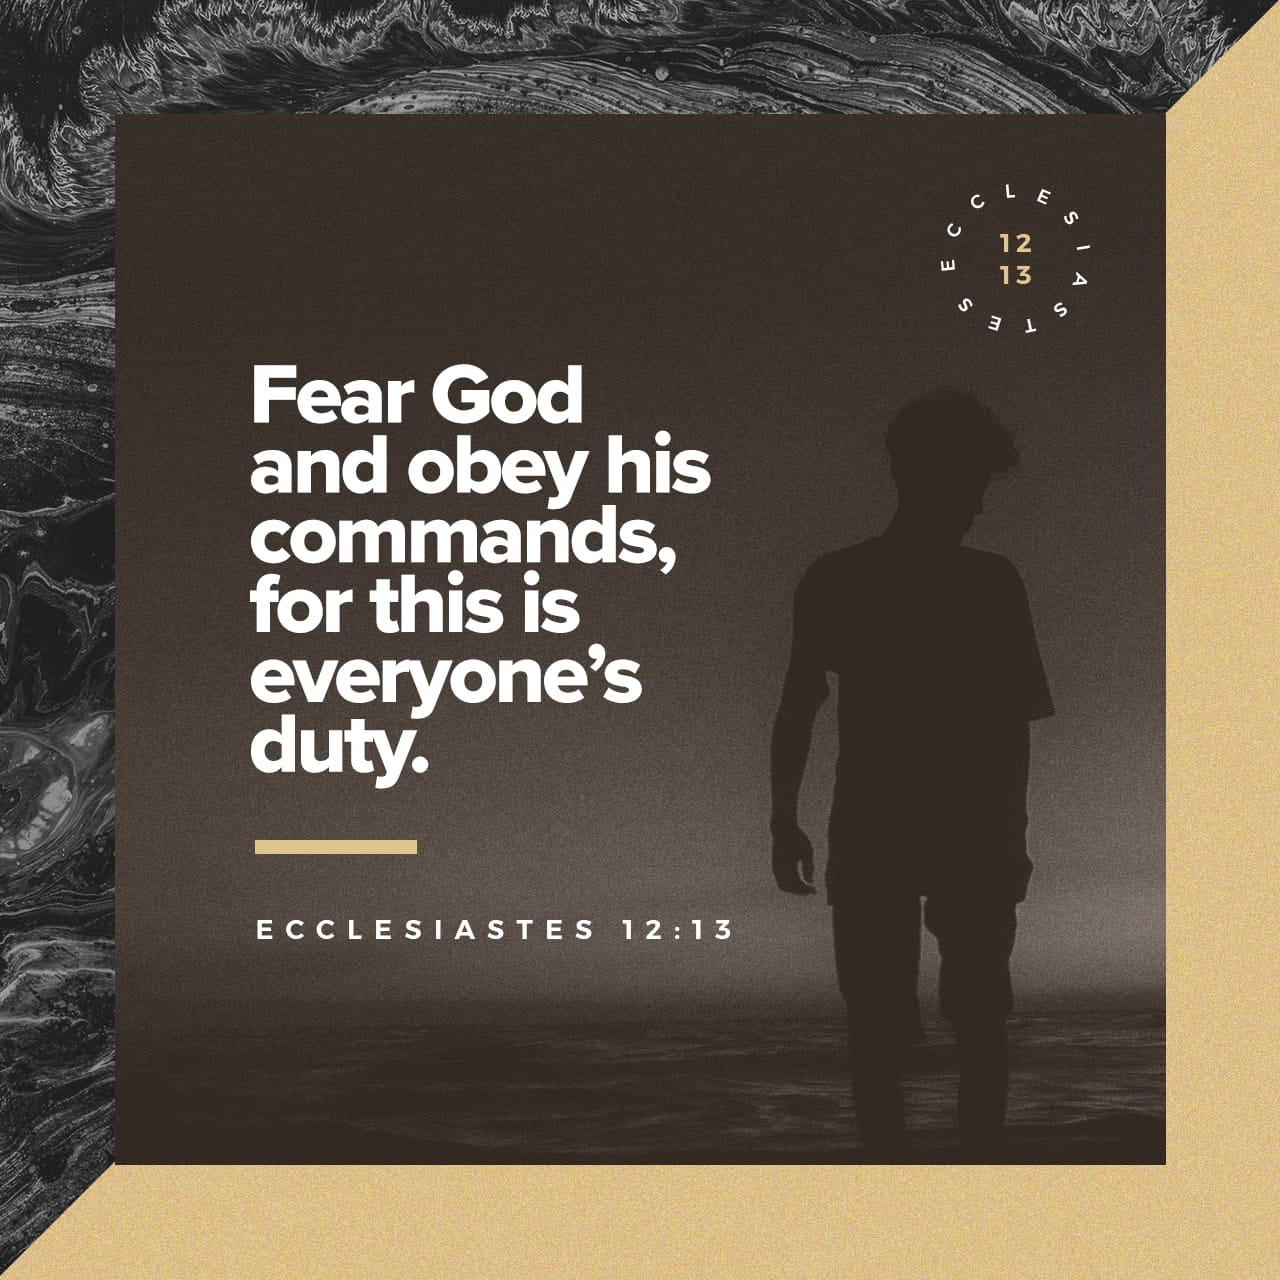 Bible Verse of the Day - day 231 - image 42335 (Ecclesiastes 12:13)